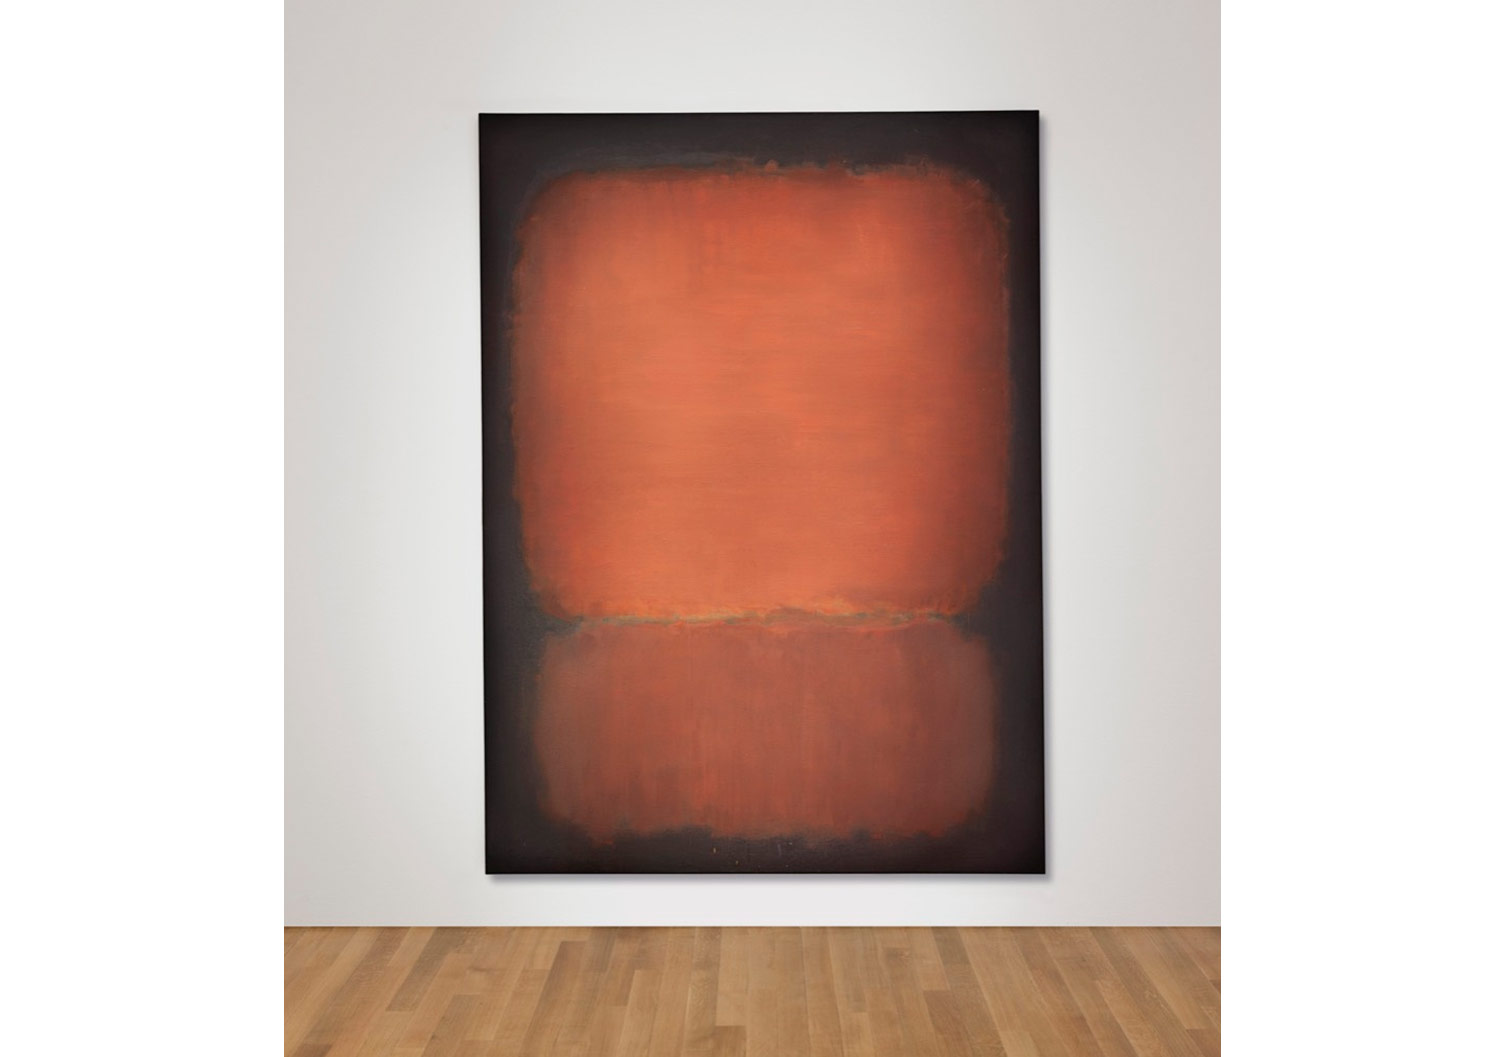 Mark Rothko, No. 10, 1958. Price Realized: $81,925,000. Courtesy of Christie's Images ltd. 2015.